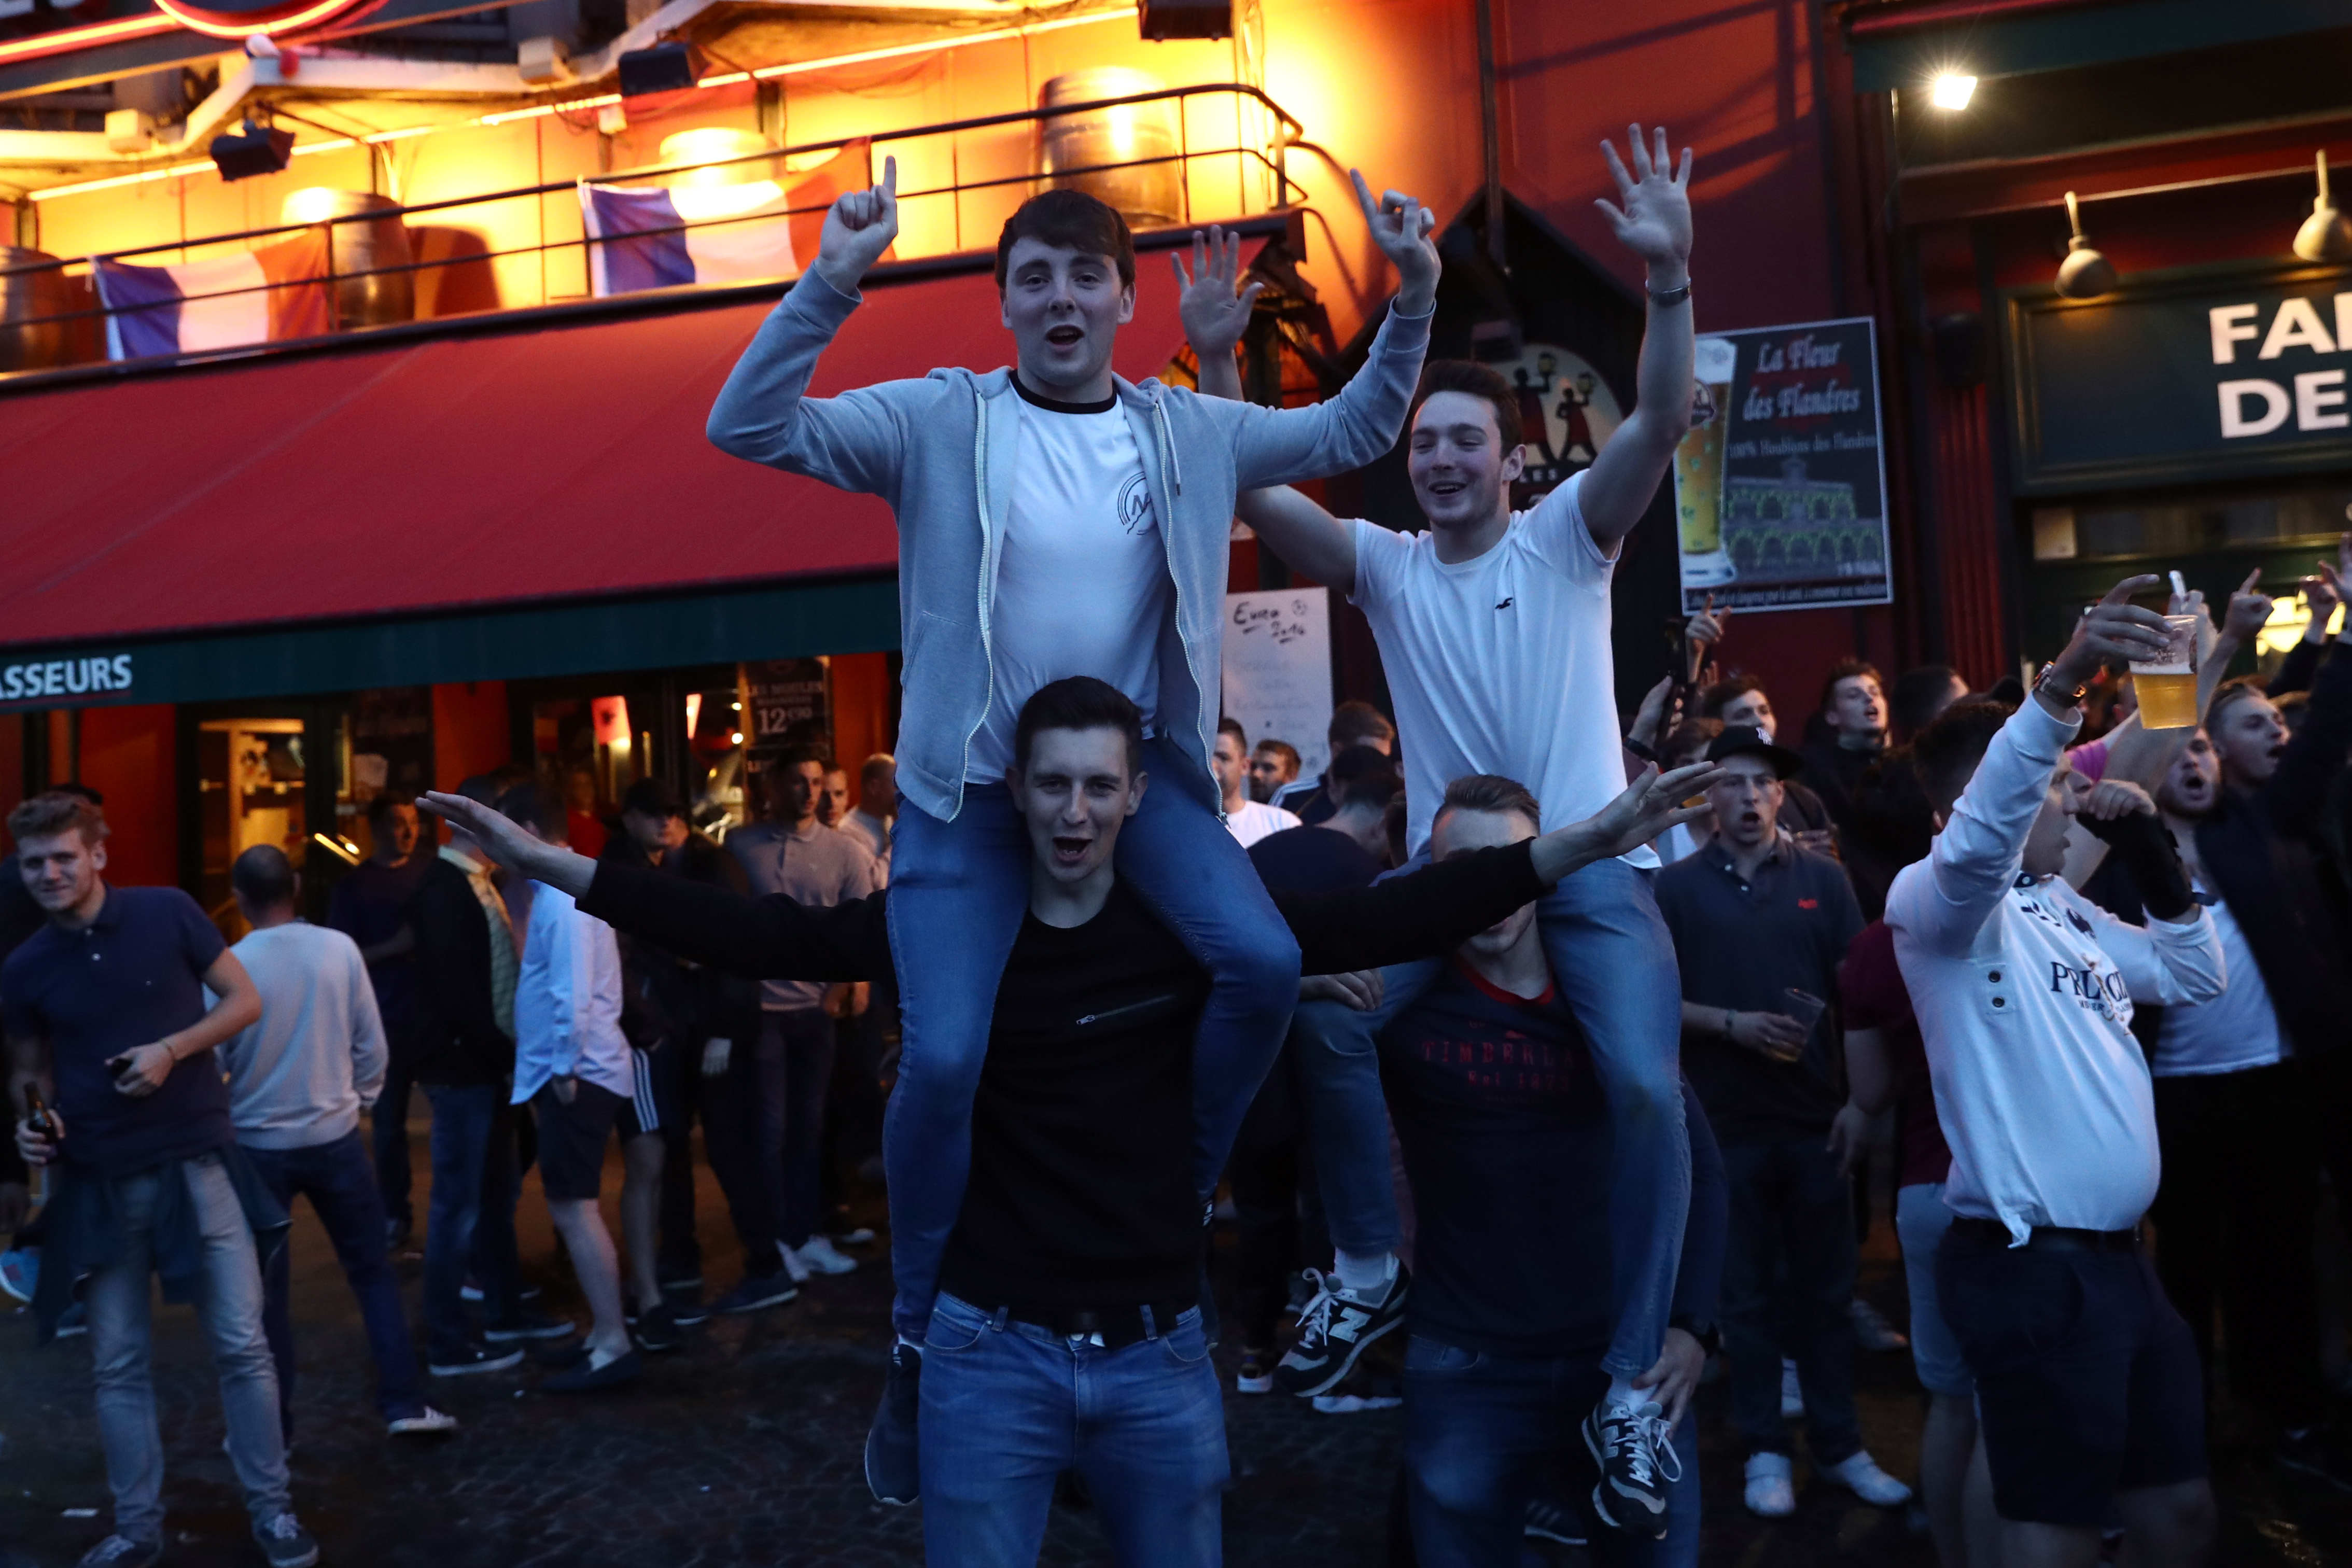 LILLE, FRANCE - JUNE 14:  English football fans chant and drink outside a pub as they gather ahead of the England v Wales game Thursday, on June 14, 2016 in Lille, France. Football fans from around Europe have descended on France for the UEFA Euro 2016 football tournament.  (Photo by Carl Court/Getty Images)